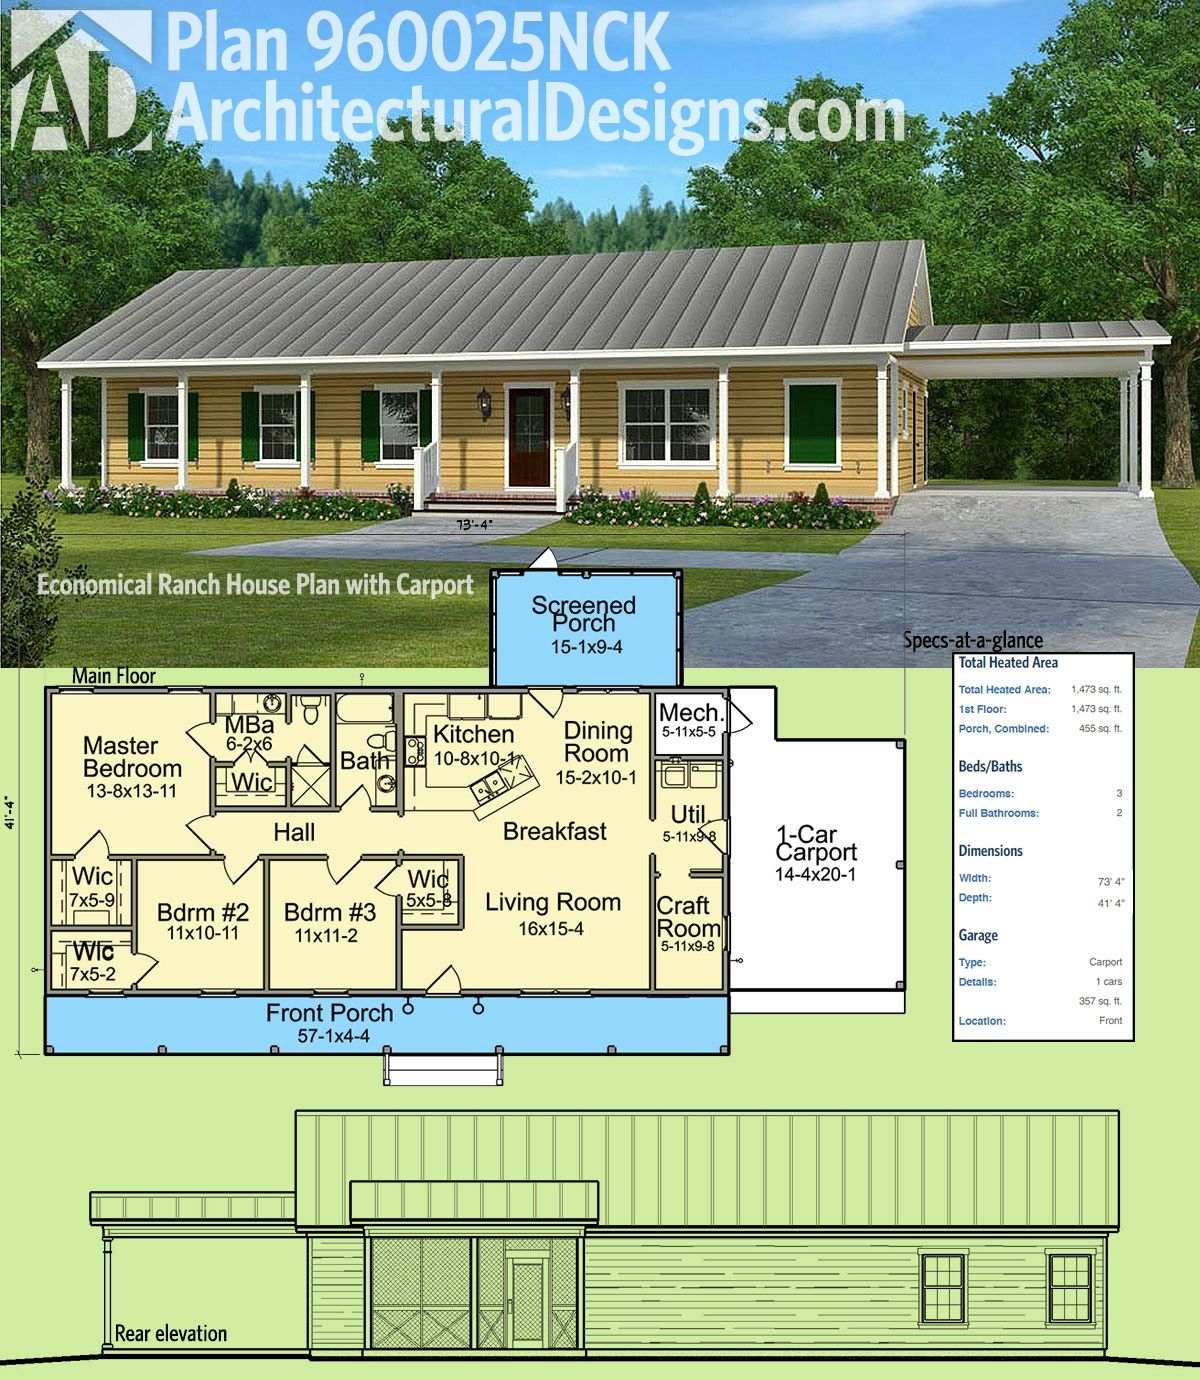 Plan 960025nck economical ranch house plan with carport Ranch floorplans